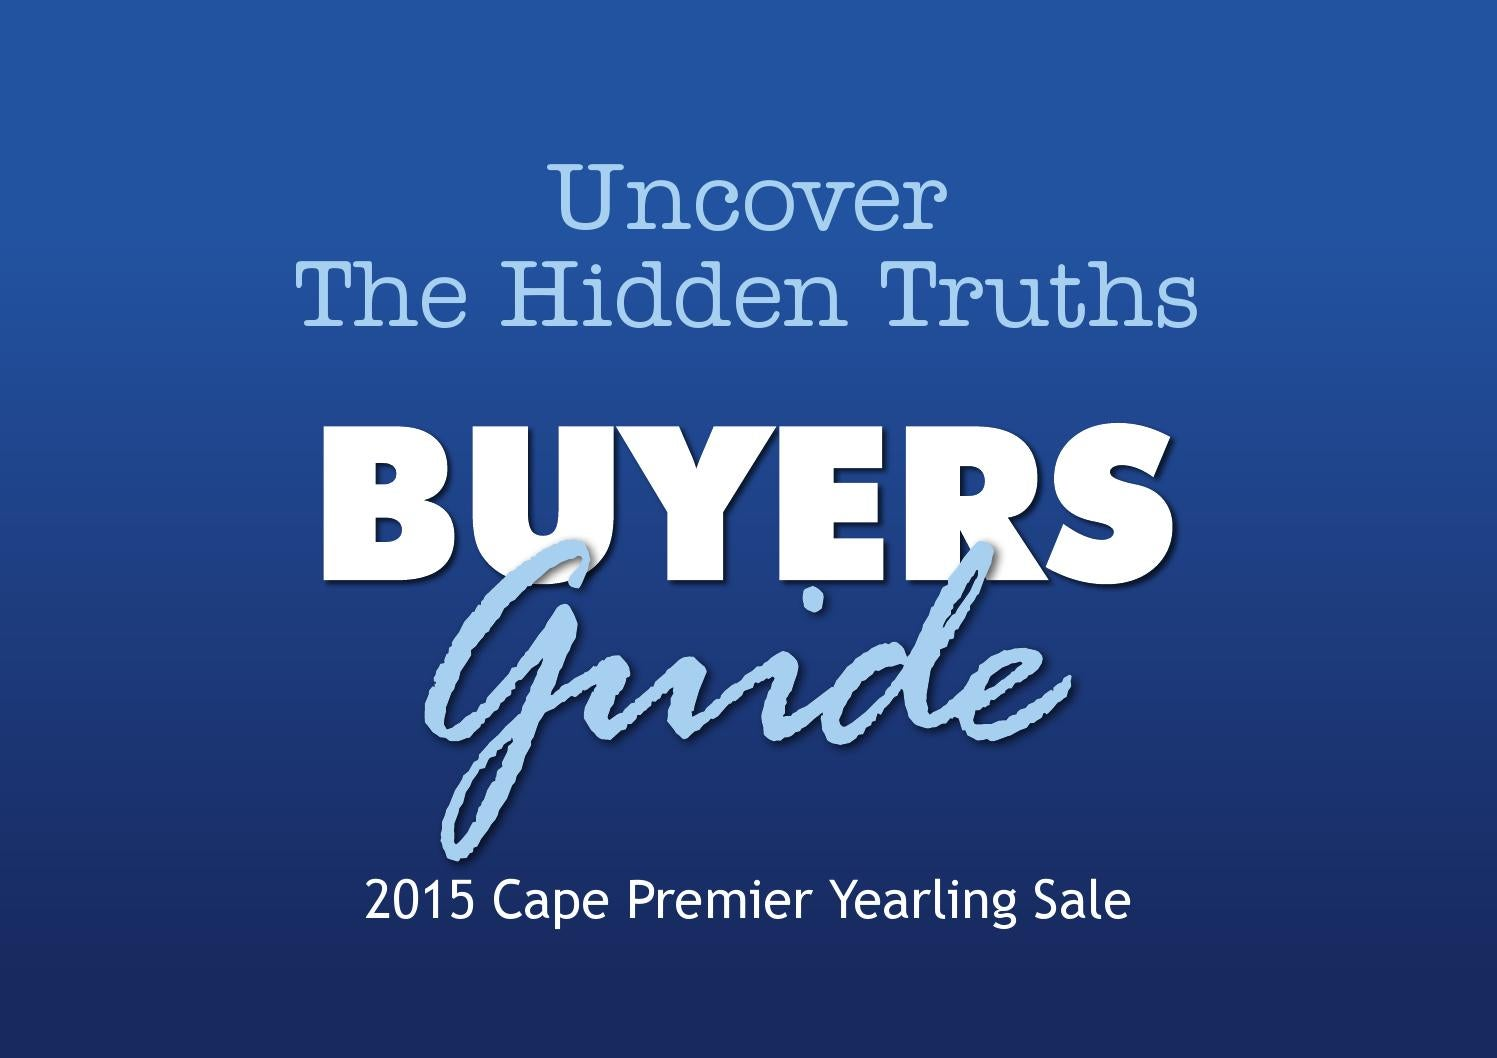 Cpys 2015 Buyer s Guide by Sporting Post - issuu d34a8169fd48